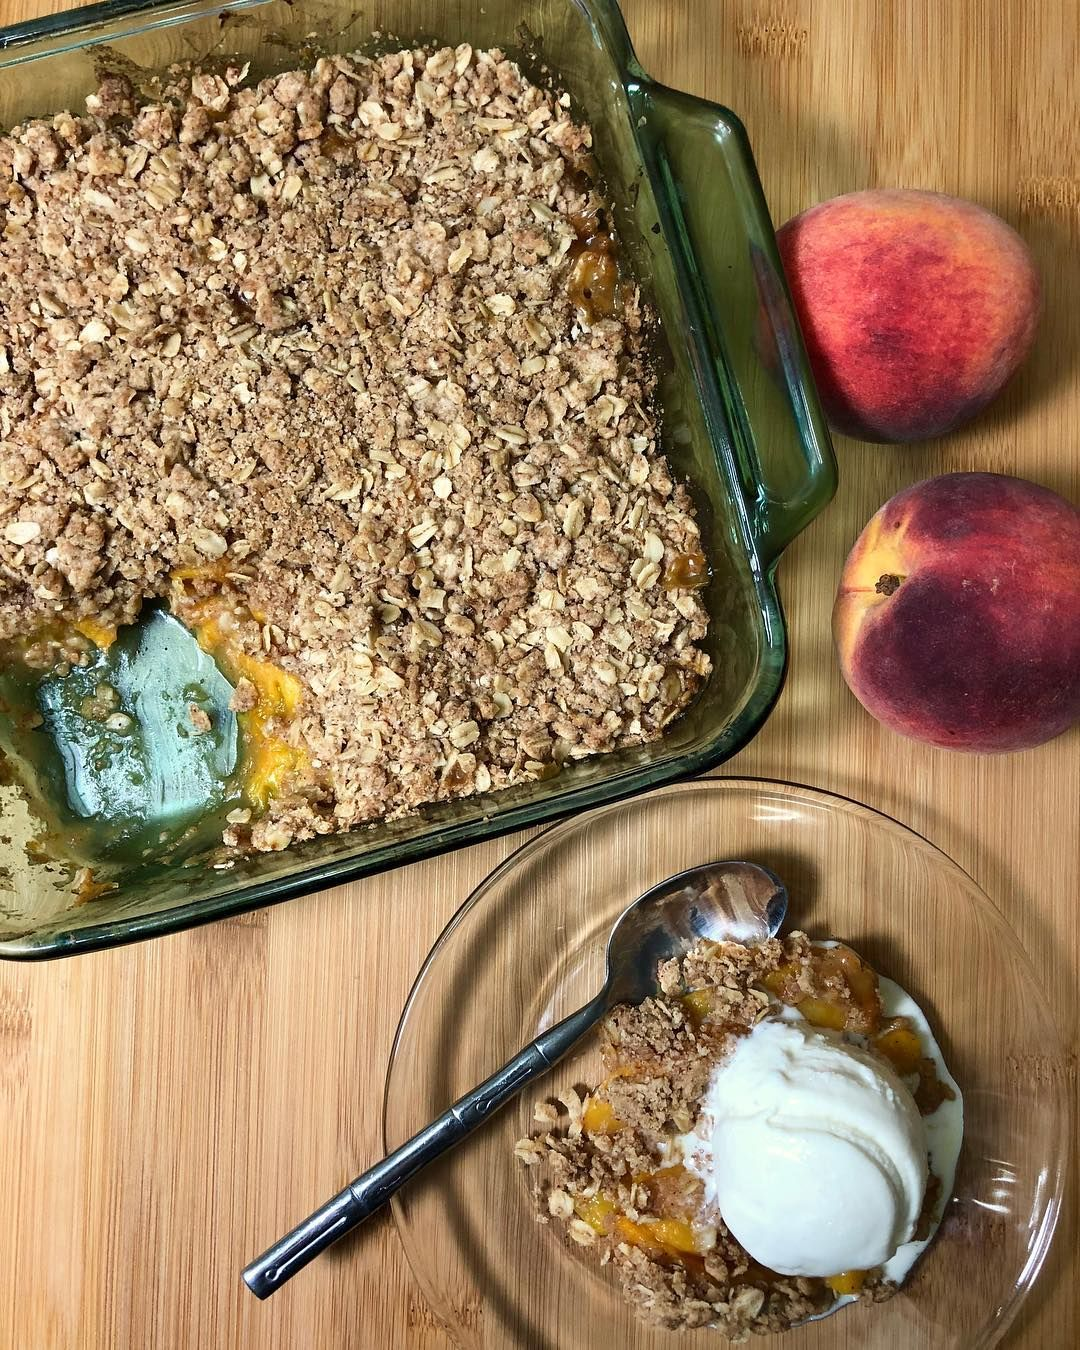 Hoping everyone is having a wonderful Labor Day weekend! Made delicious peach crisp! Pairing with creamy vanilla ice cream makes the perfect end of summer dessert!. . . . #peach #peaches #fruit #peachseason #oat #peachcrisp #fruitdessert #dessert #dessertlover #summerdessert #dessertoftheday #dessertofinstagram #summer #thefeedfeed #thebakefeed #baking #bakefromscratc #labordaydesserts